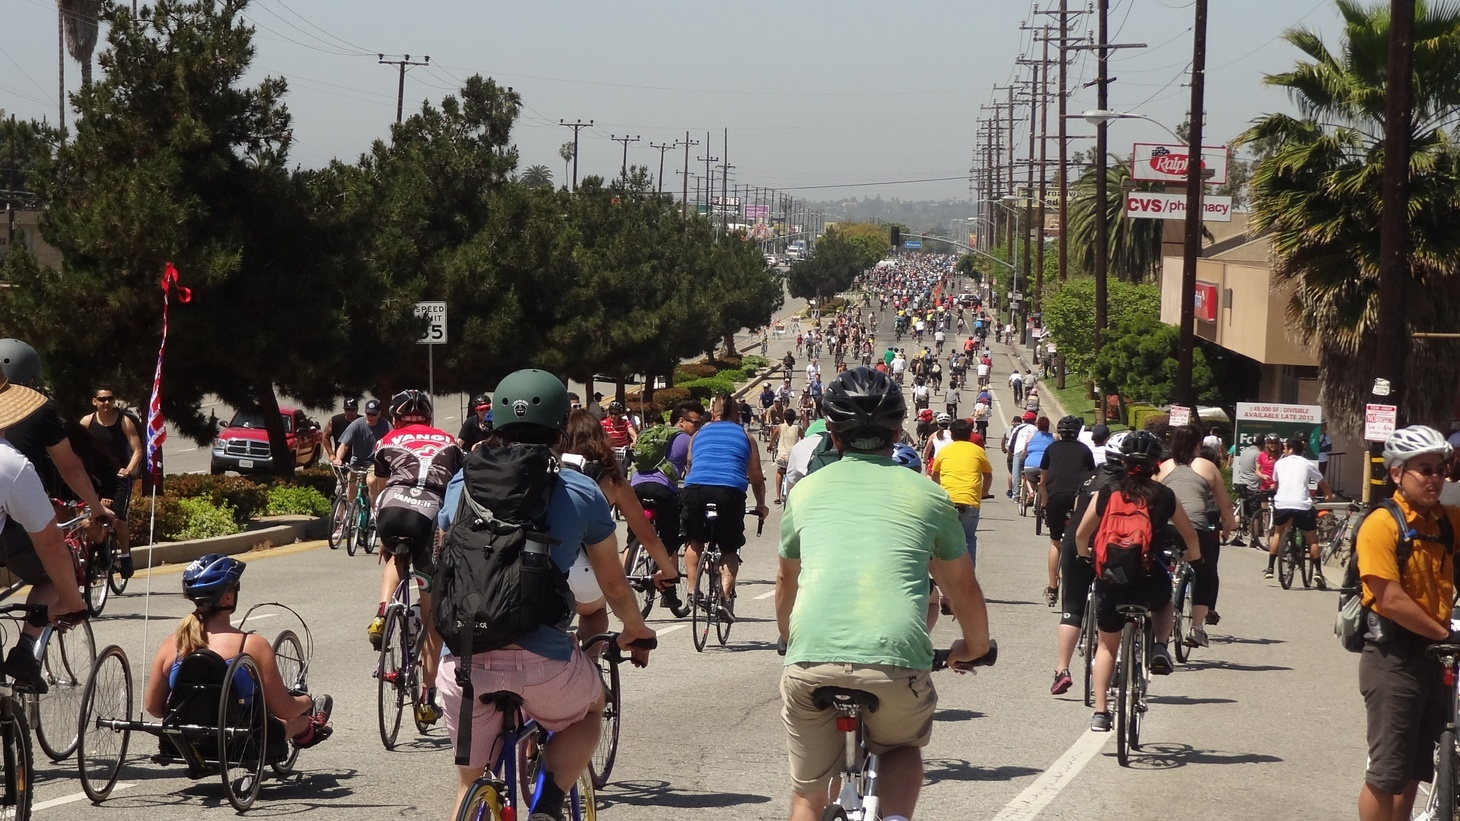 CicLAvia participants ride from downtown LA to Venice in 2014.